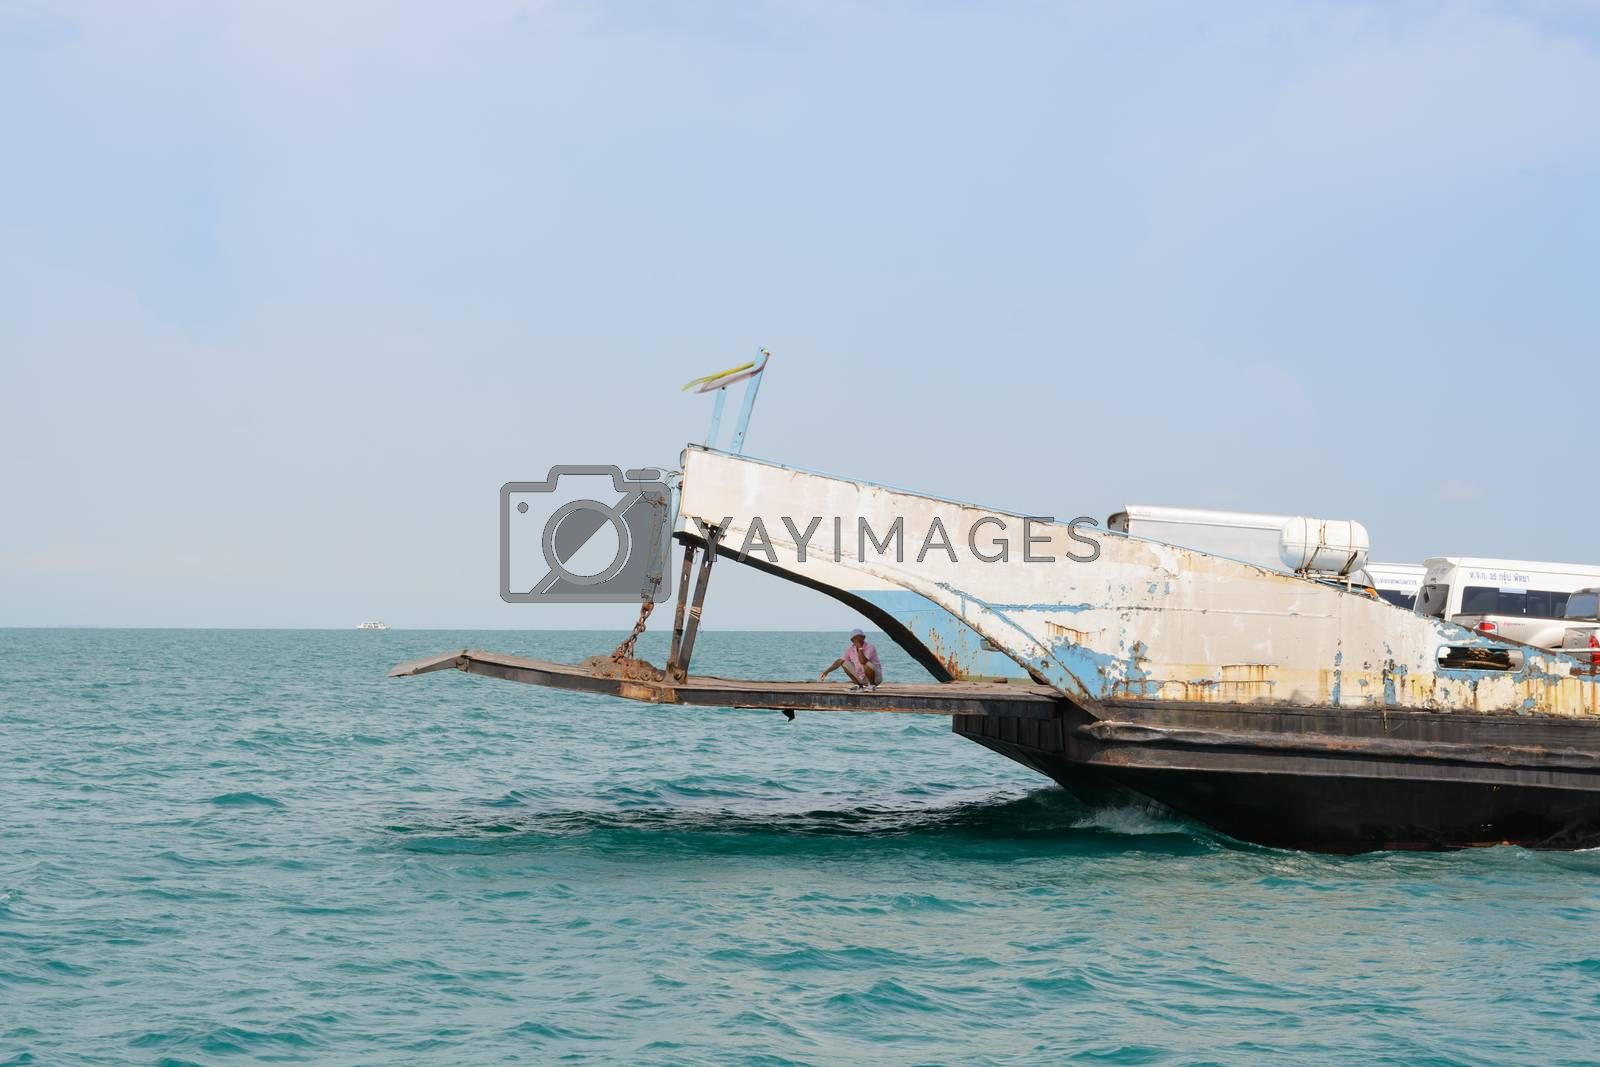 Trat, Thailand-April 29, 2015: Tourists and Cars loaded on ferry boat and heading to Koh Chang Island on April 29, 2015 in Koh Chang Island, Trat, Thailand. . Koh chang Is the second largest island of Thailand.